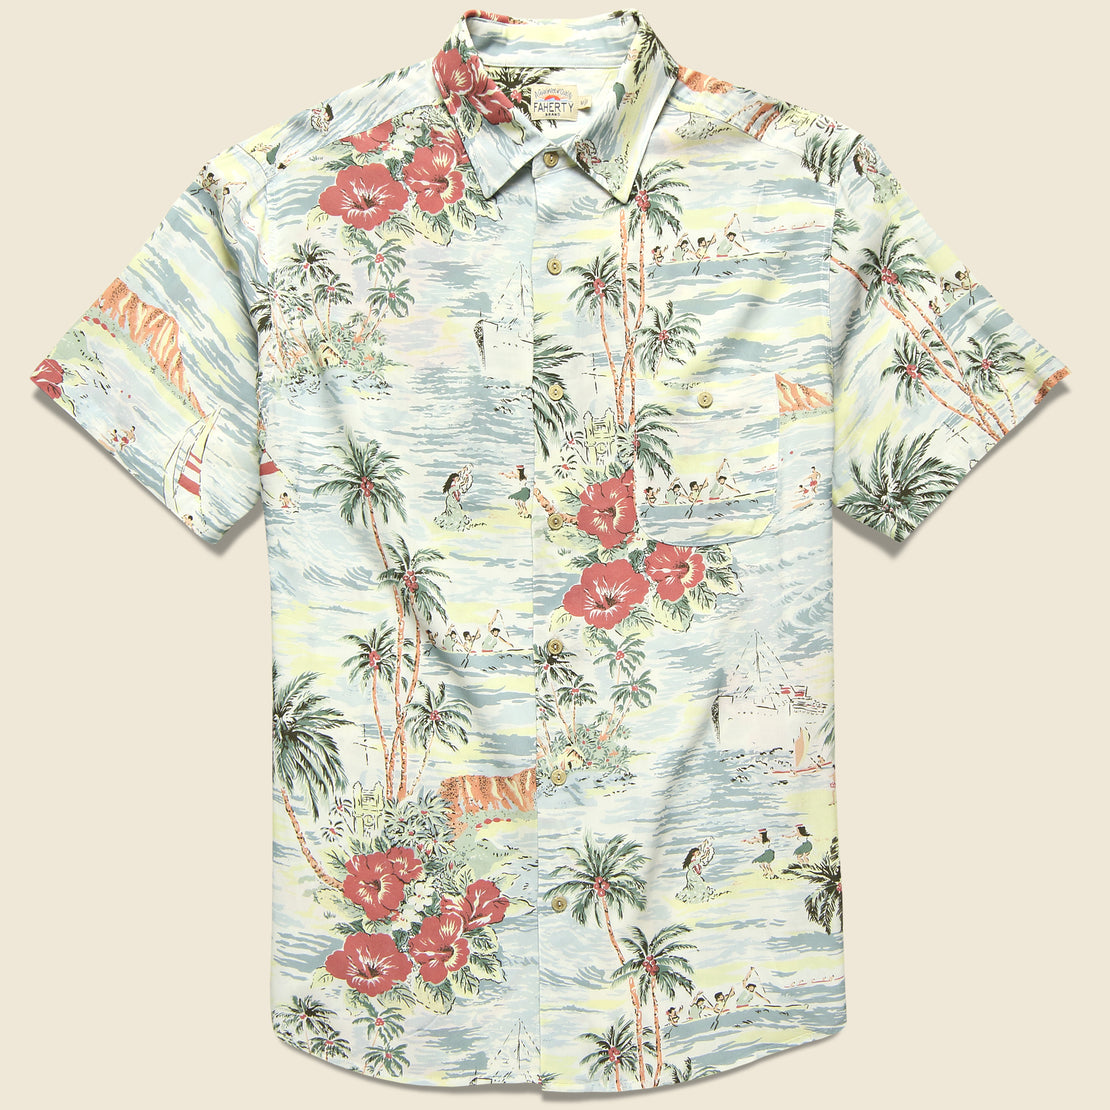 Faherty Rayon Hawaiian Shirt - Aloha Bliss